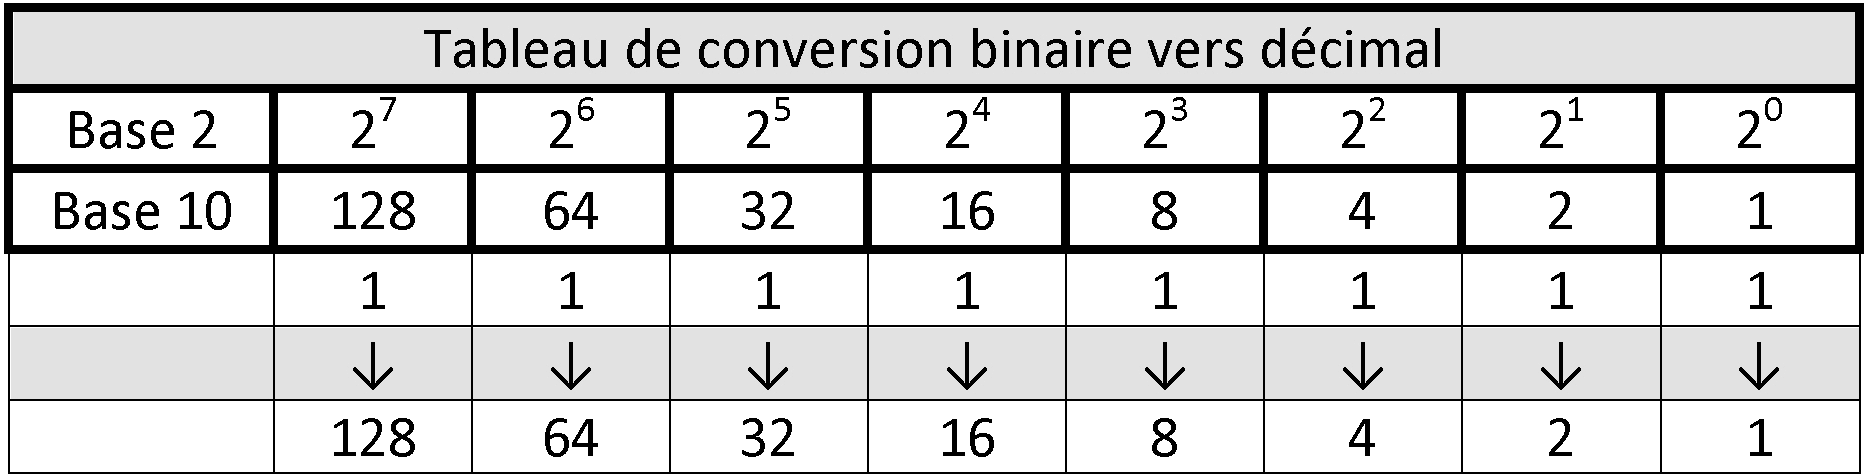 table thermique des options binaires)